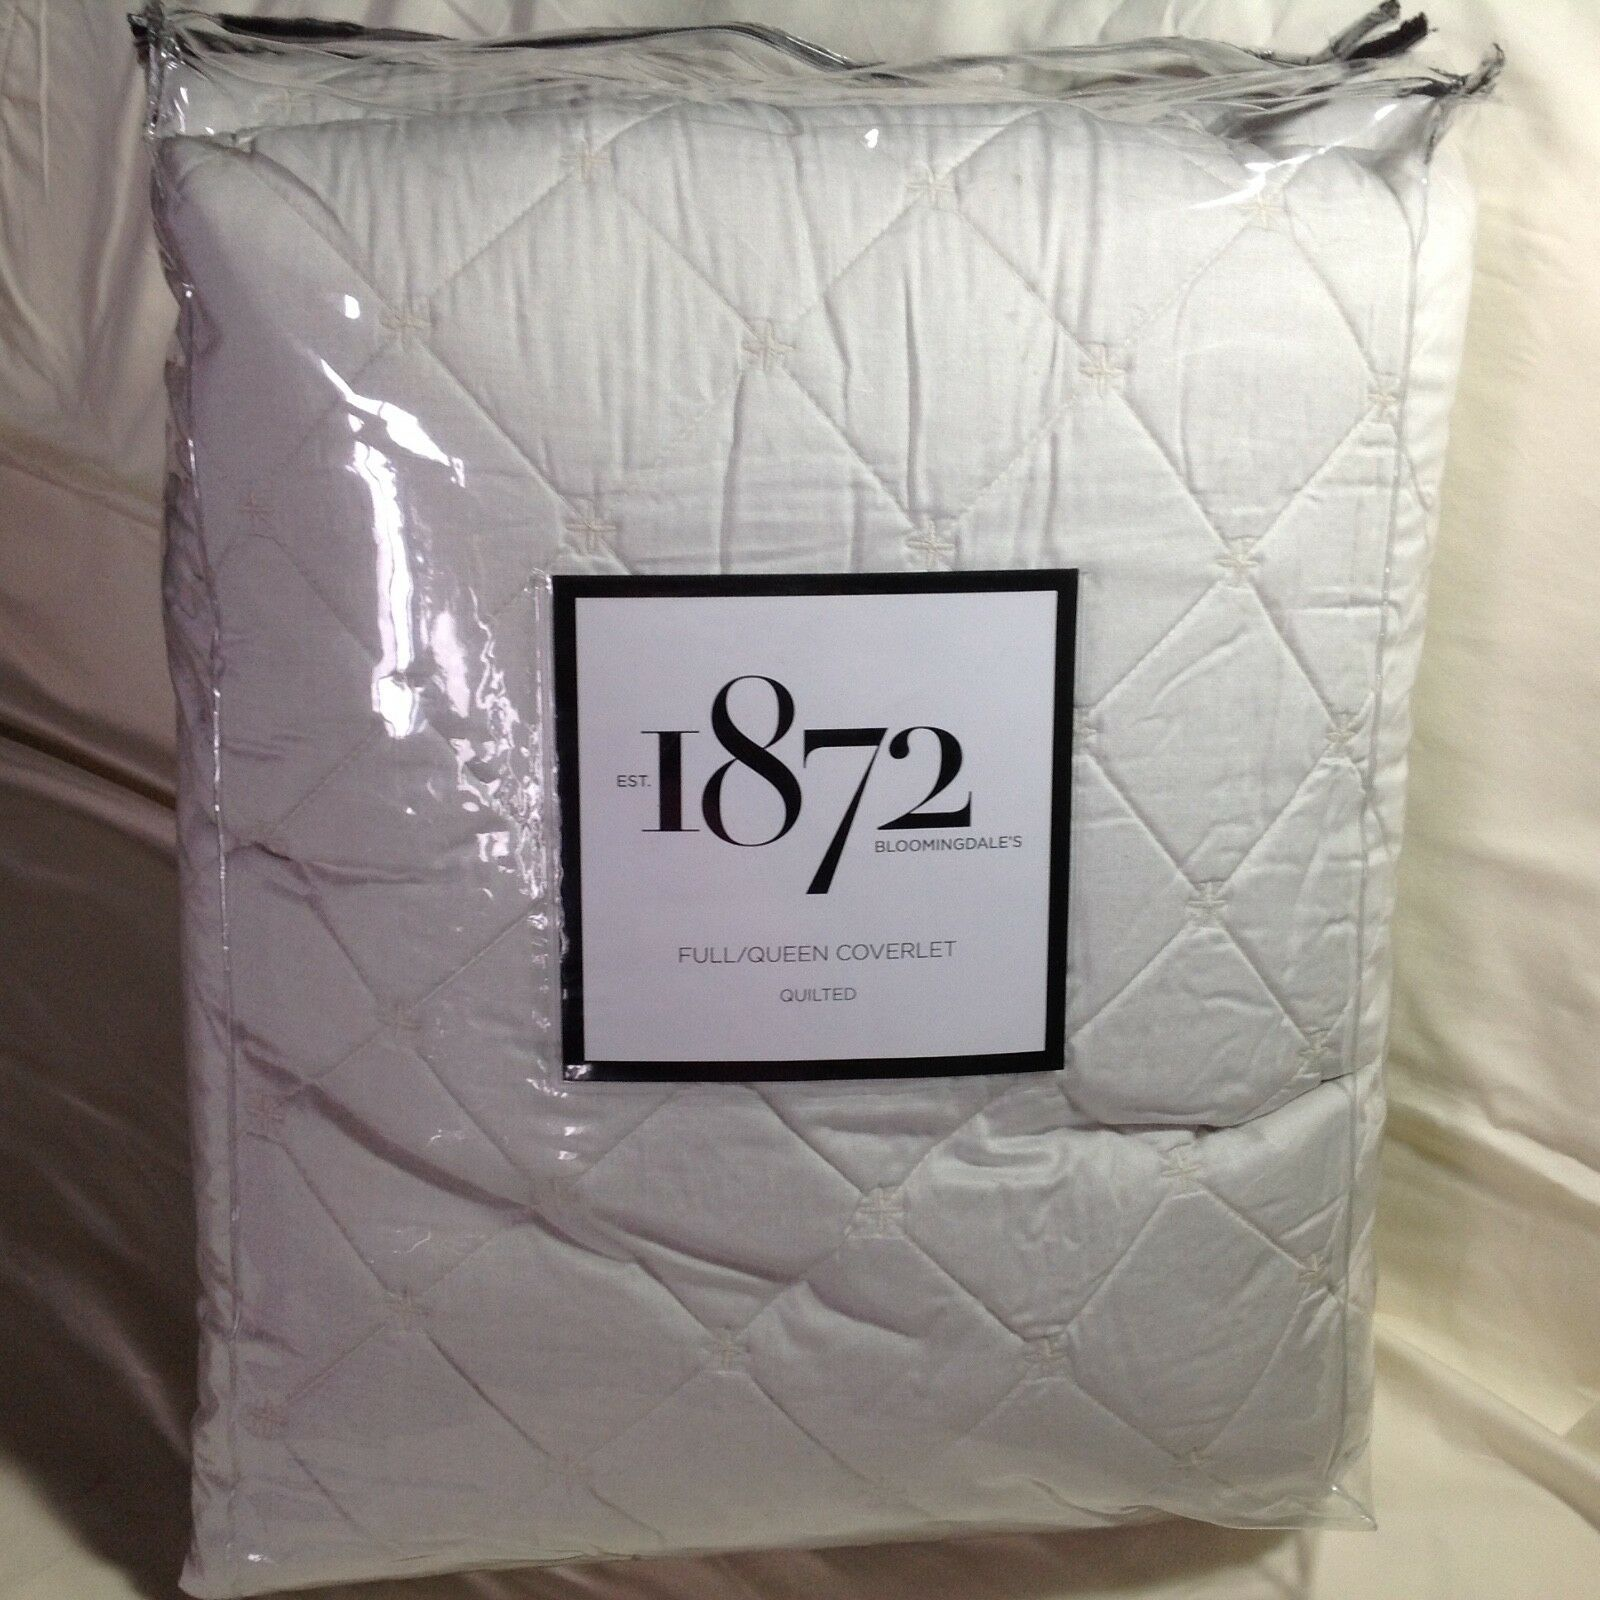 Bloomingdale's 1872 Meridian Egyptian Cotton FULL QUEEN Coverlet IVORY NEW